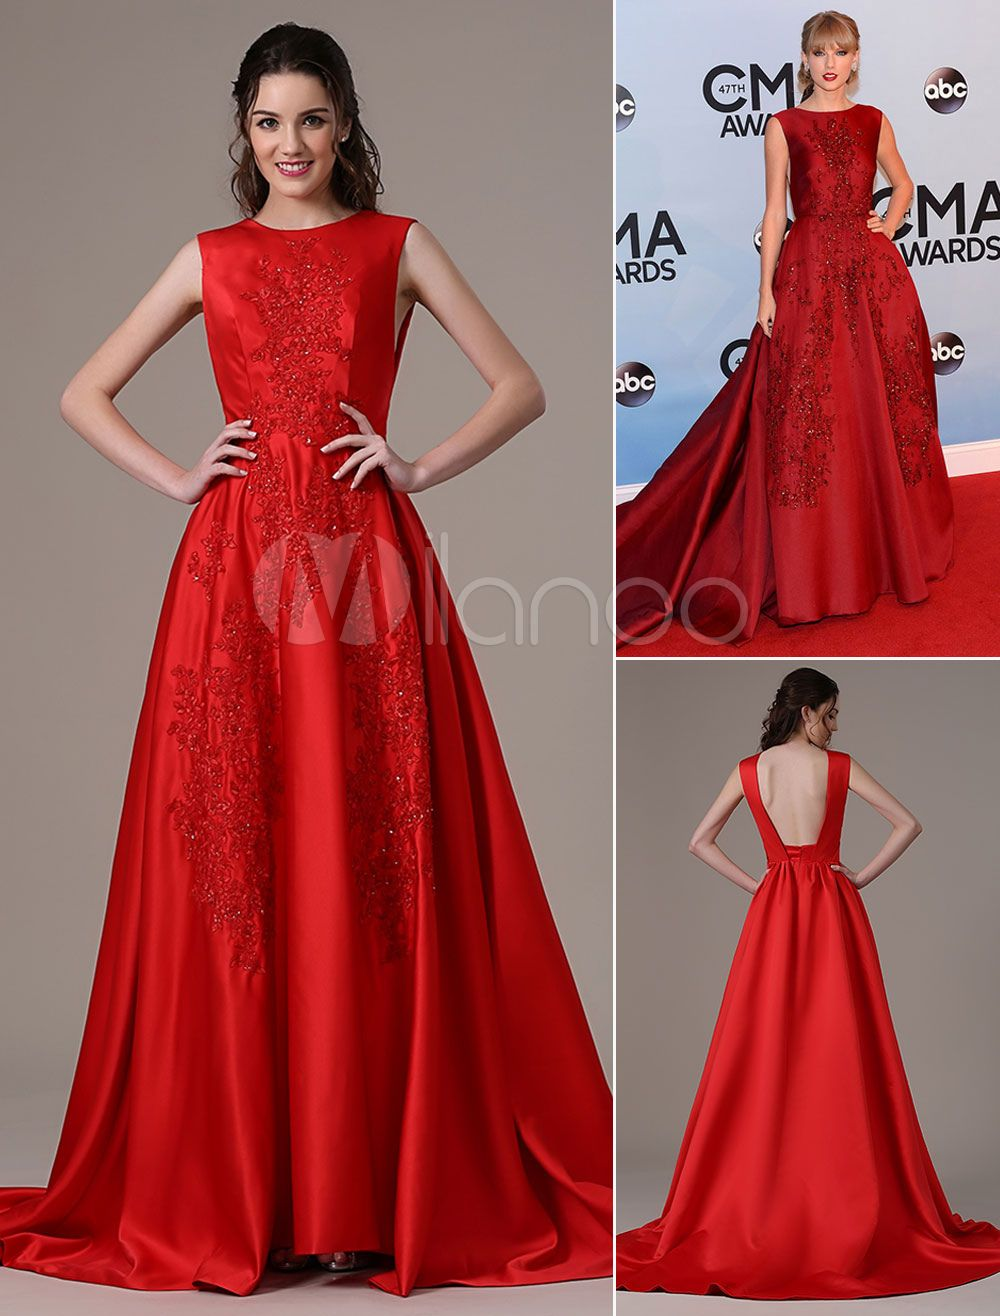 Taylor Swift CMA Cutout Red Ball Gown | Dresses | Pinterest | Taylor ...